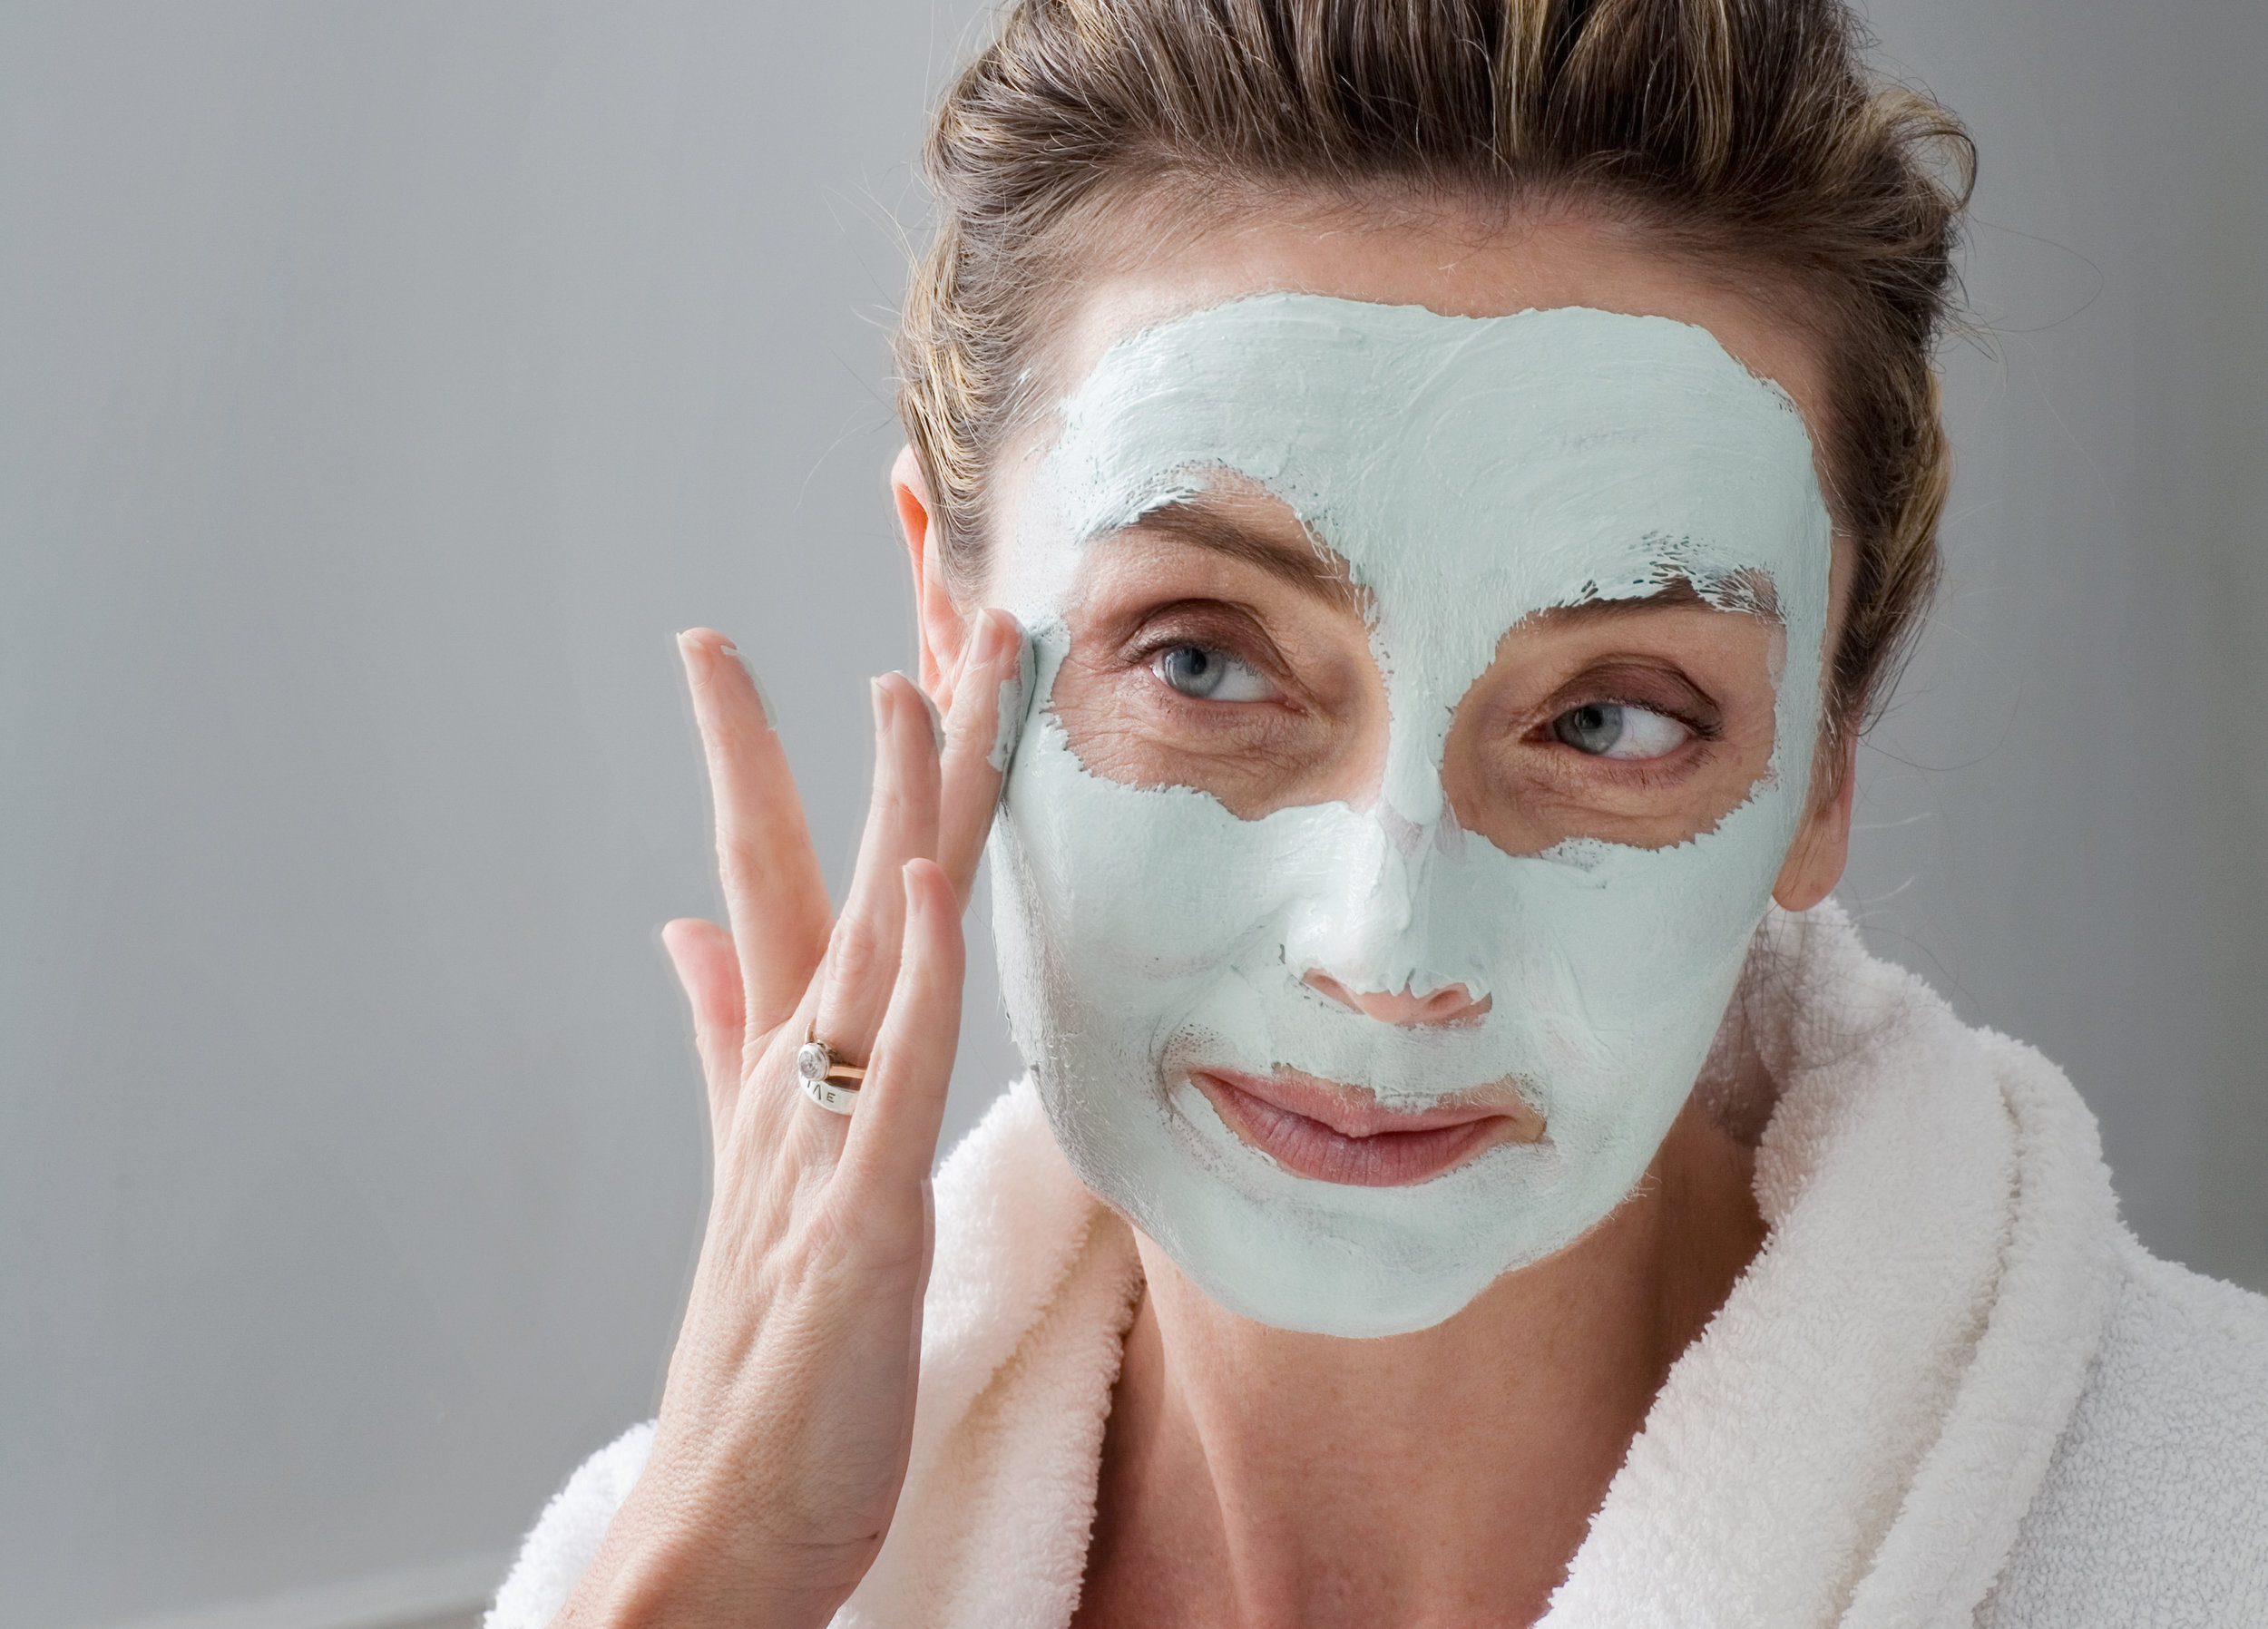 Revitalize Your Skin With the 14 Best Face Masks for Women Over 50